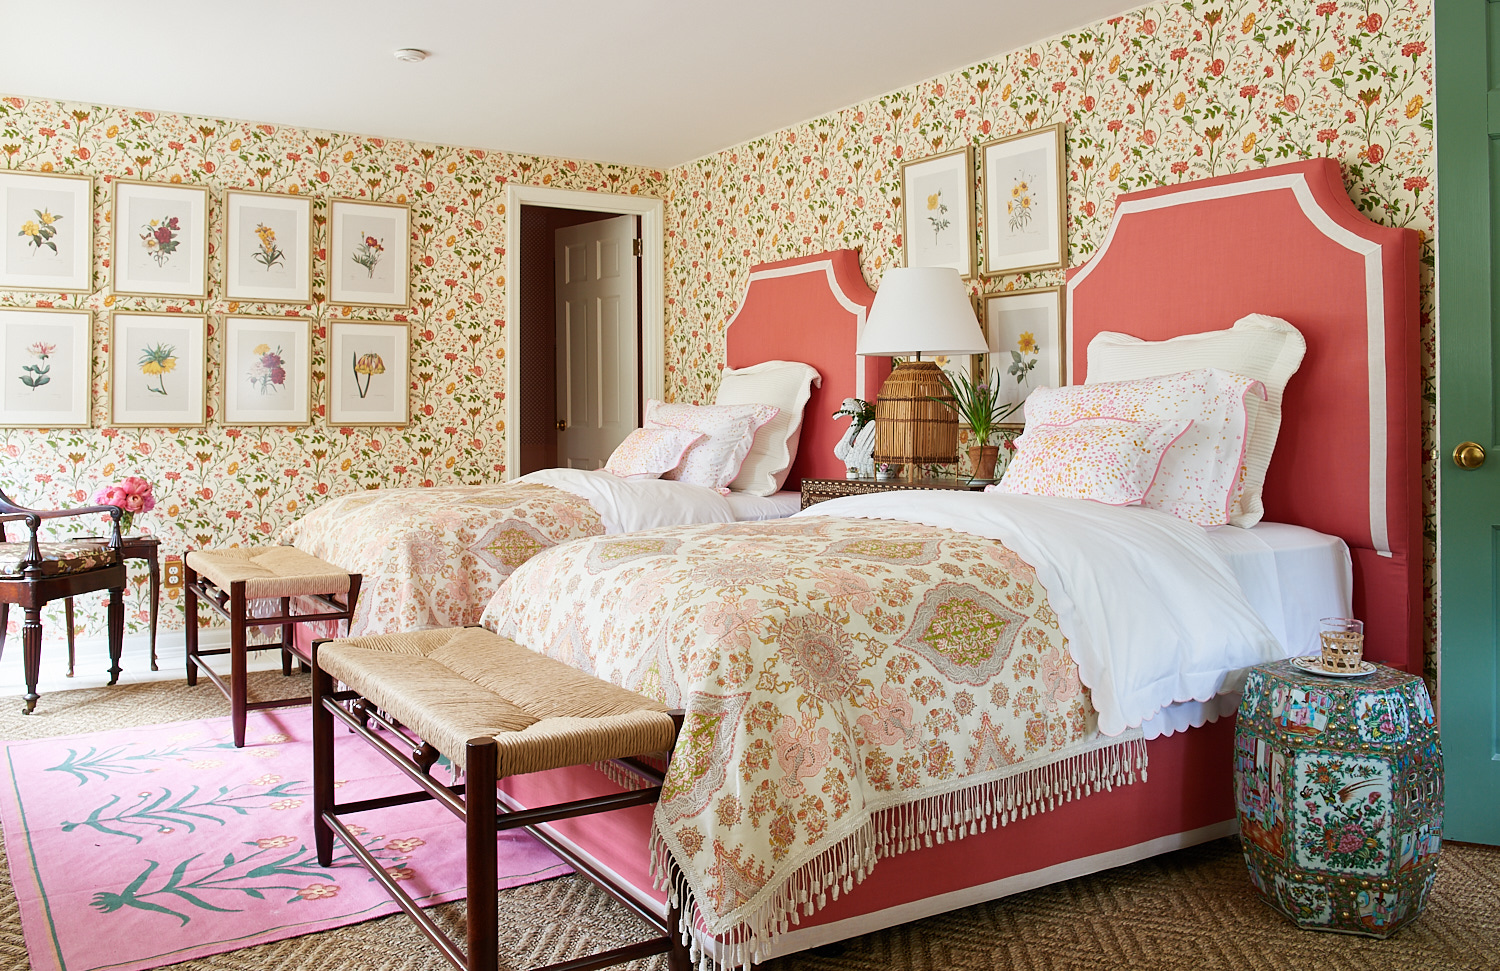 Pink upholstered twin bed headboards with custom shams pillows, and wicker benches